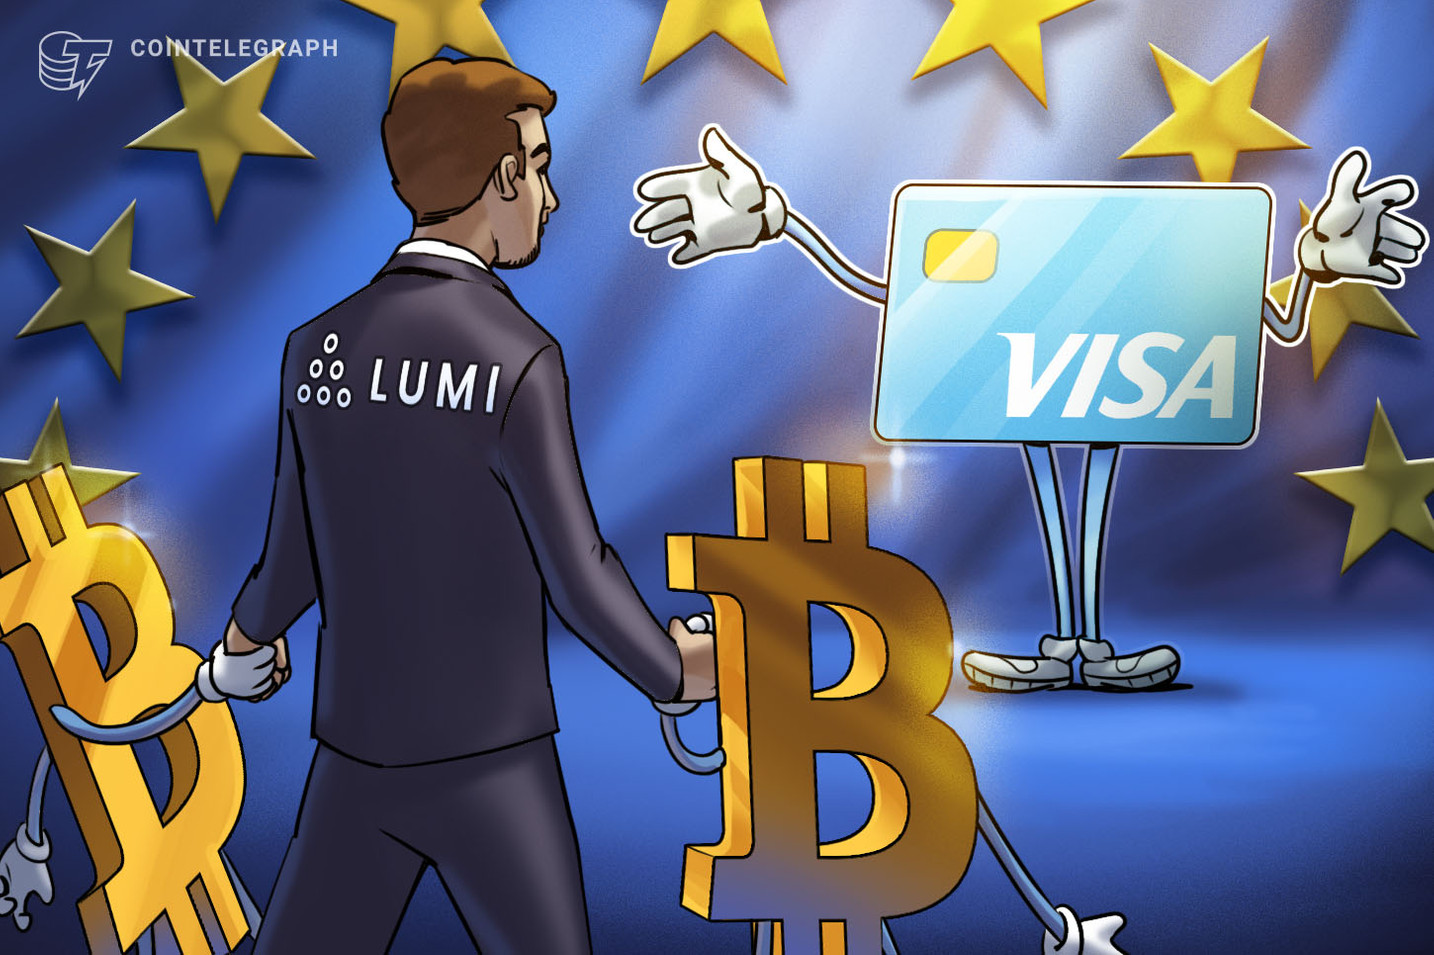 Crypto Wallet Vows to Offer BTC Withdrawals to Credit Cards